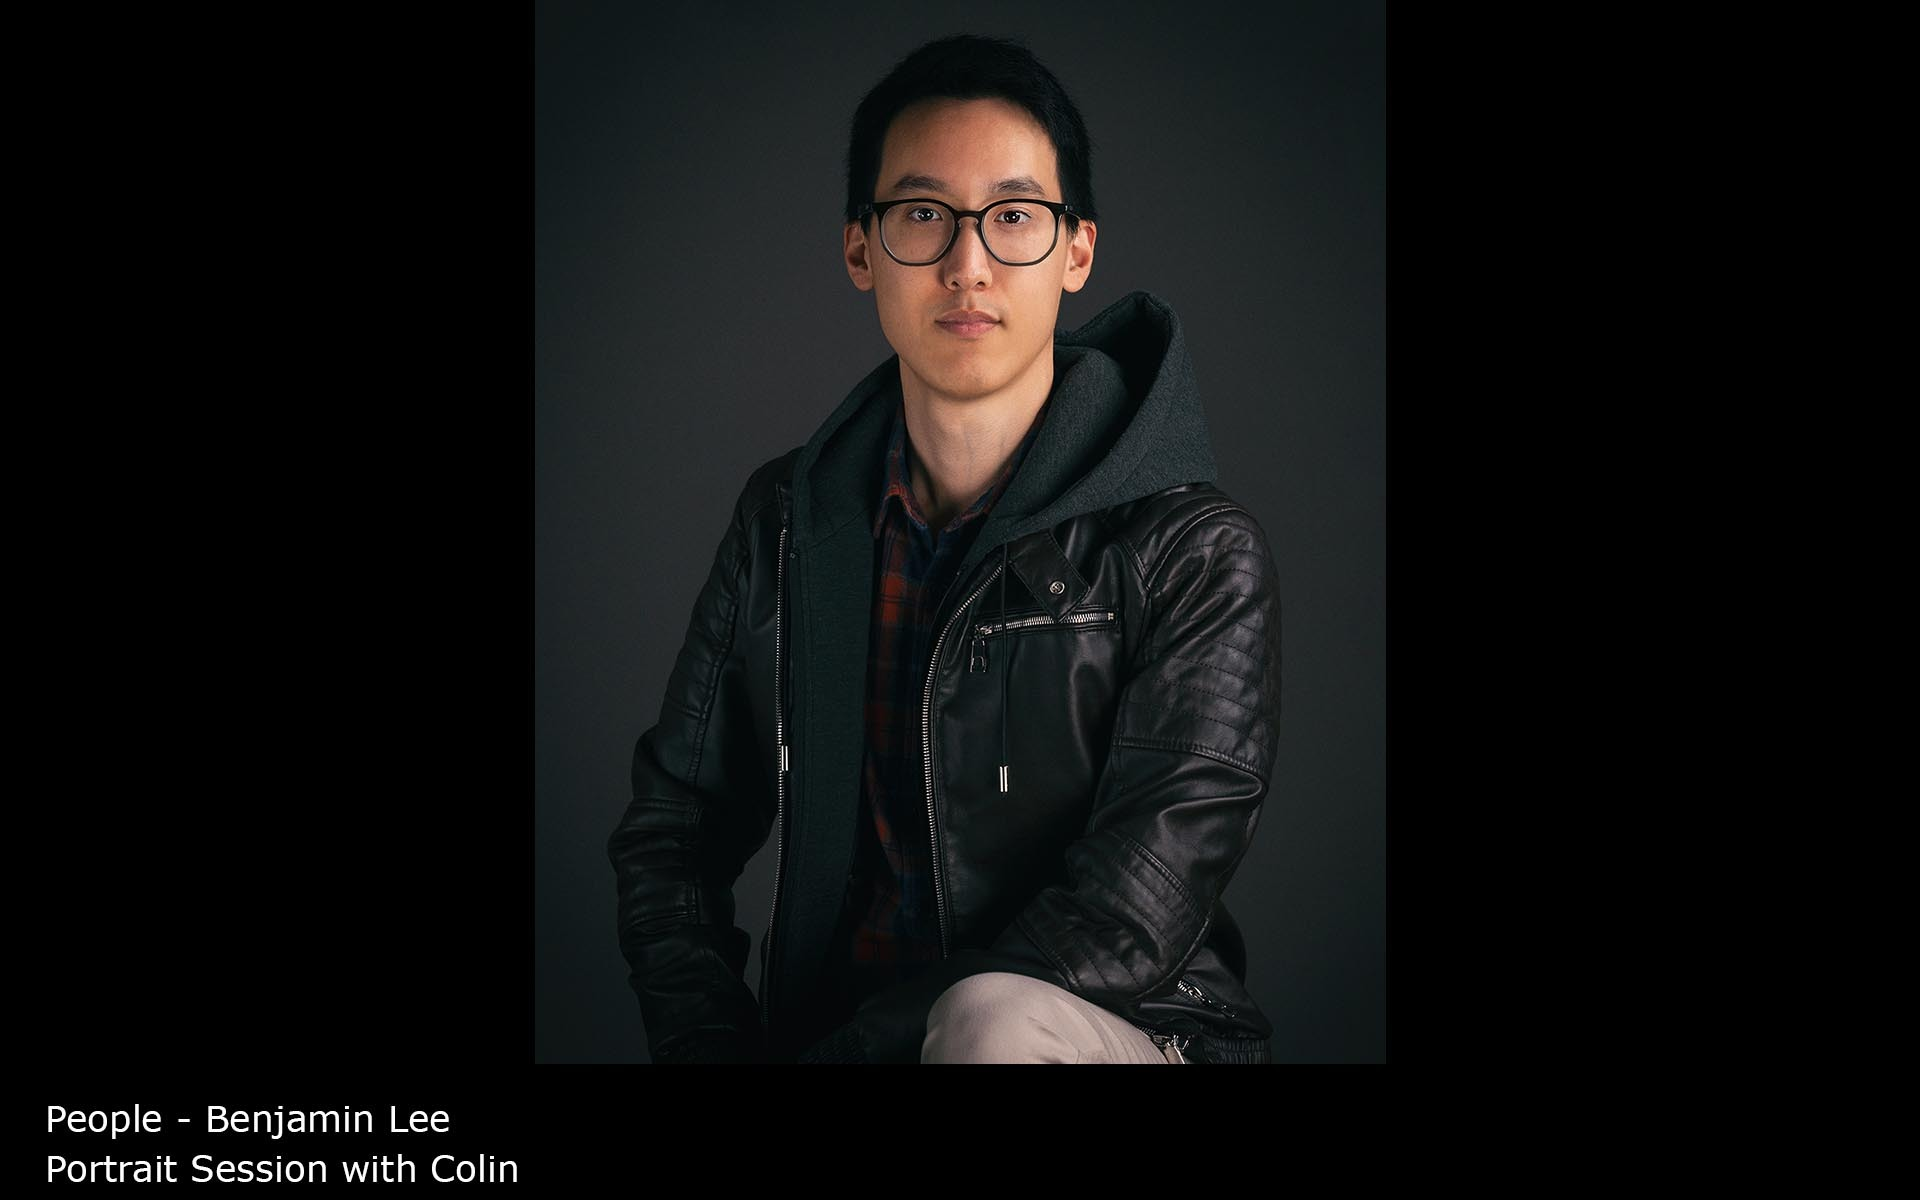 Portrait Session with Colin - Benjamin Lee